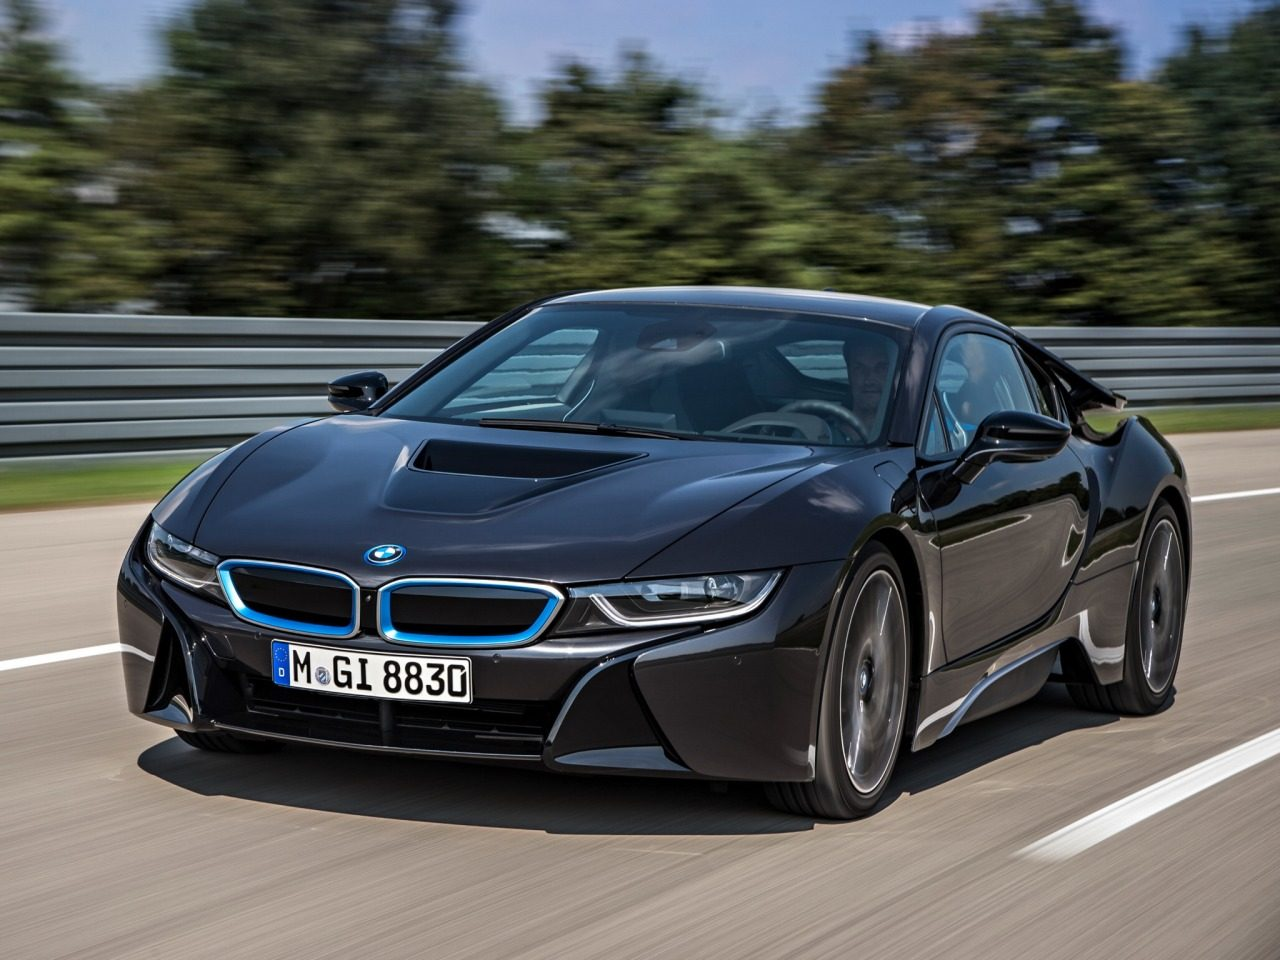 BMW-i8-Coupe-2014-01.jpg